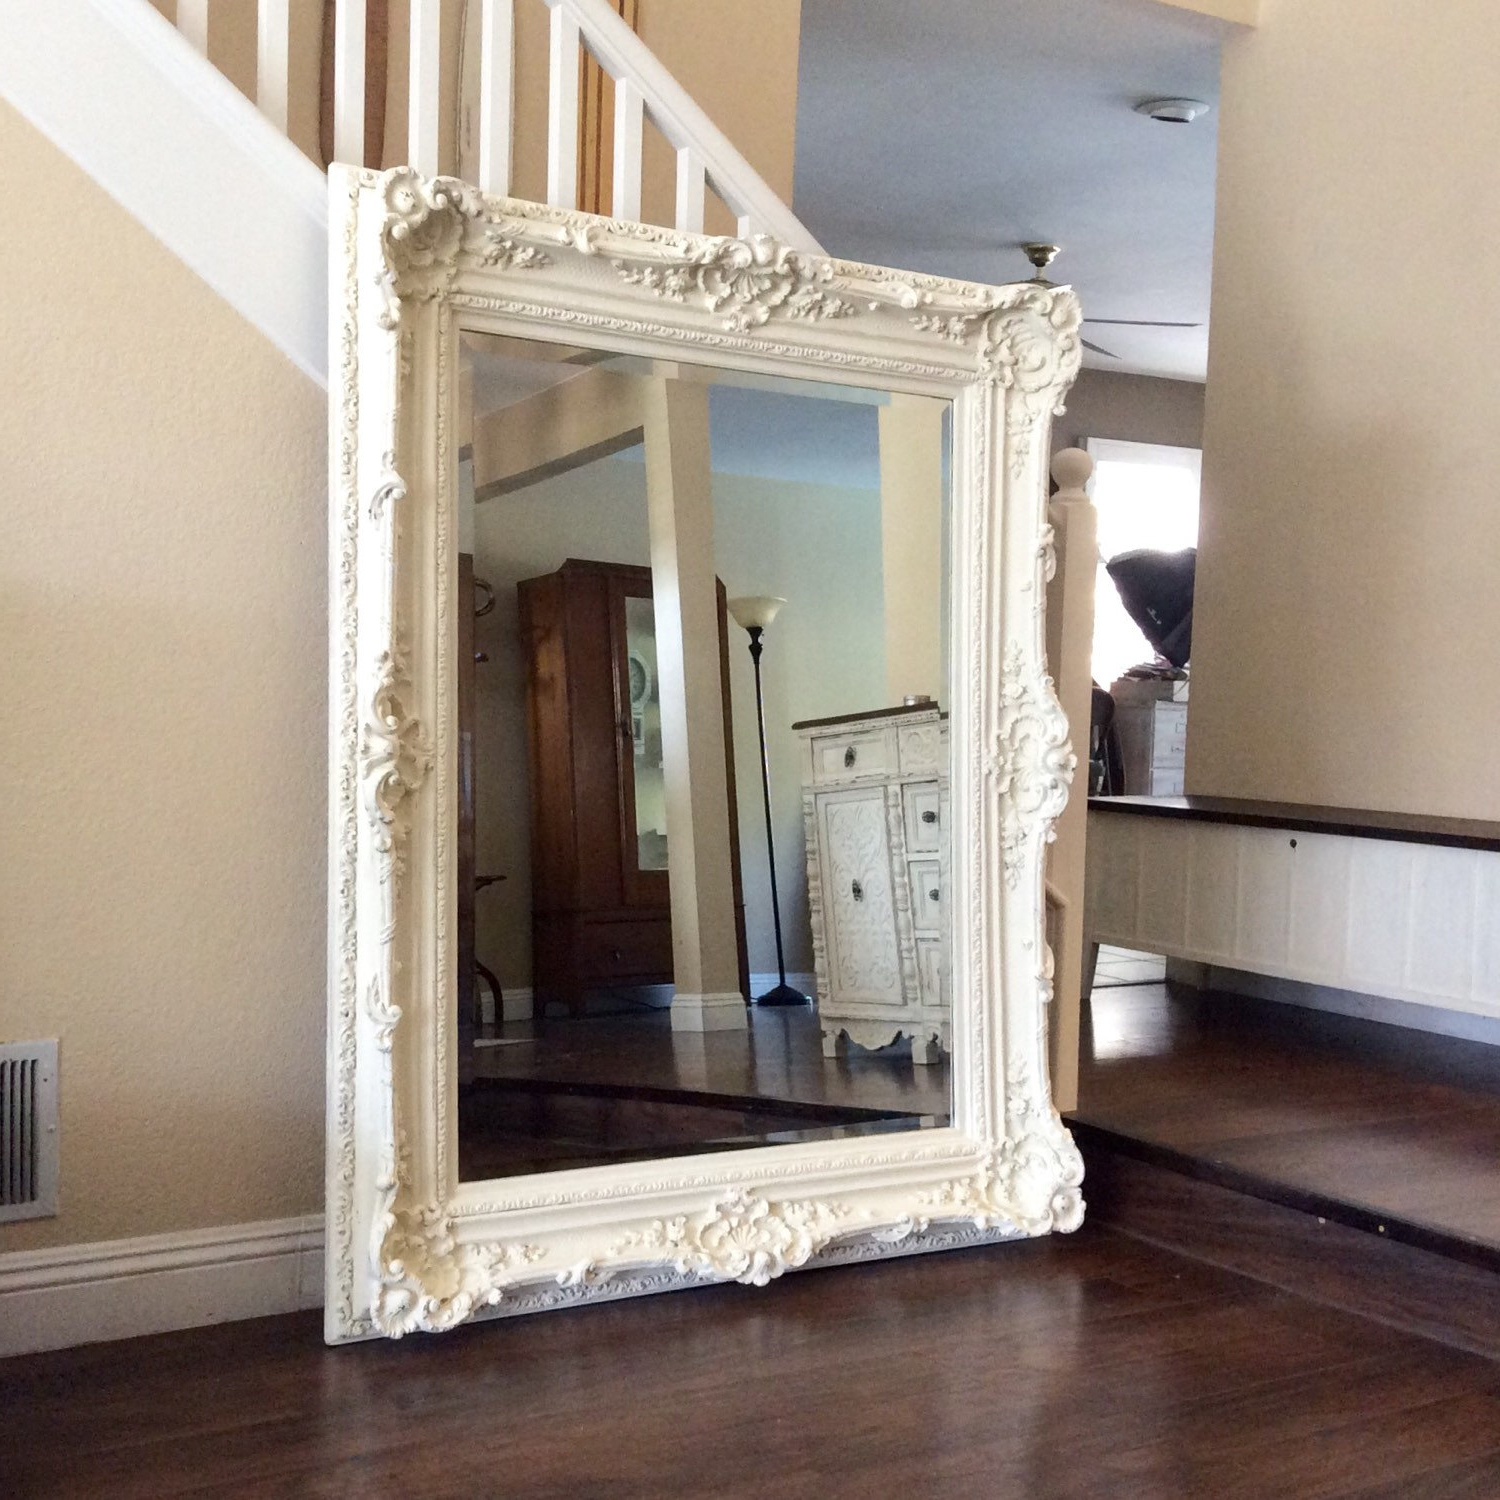 2020 Shabby Chic Large Wall Mirrors With Ornate Mirror For Sale Large White Shabby Chic Wall Bathroom (View 4 of 20)